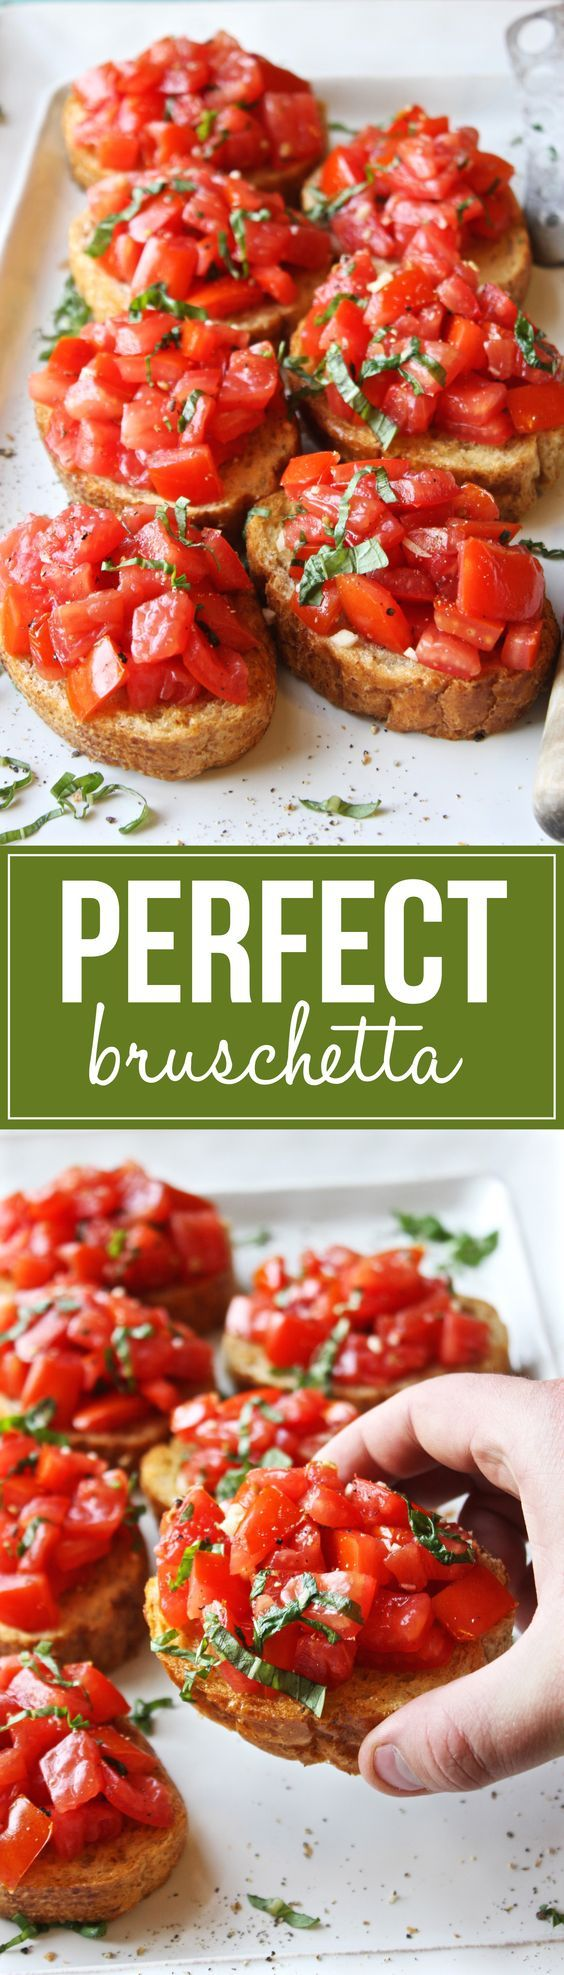 The Perfect Bruschetta. Simply delicious and so easy to prepare.  It's the perfect bite!!!  #HealthyEating #CleanEating  #ShermanFinancialGroup